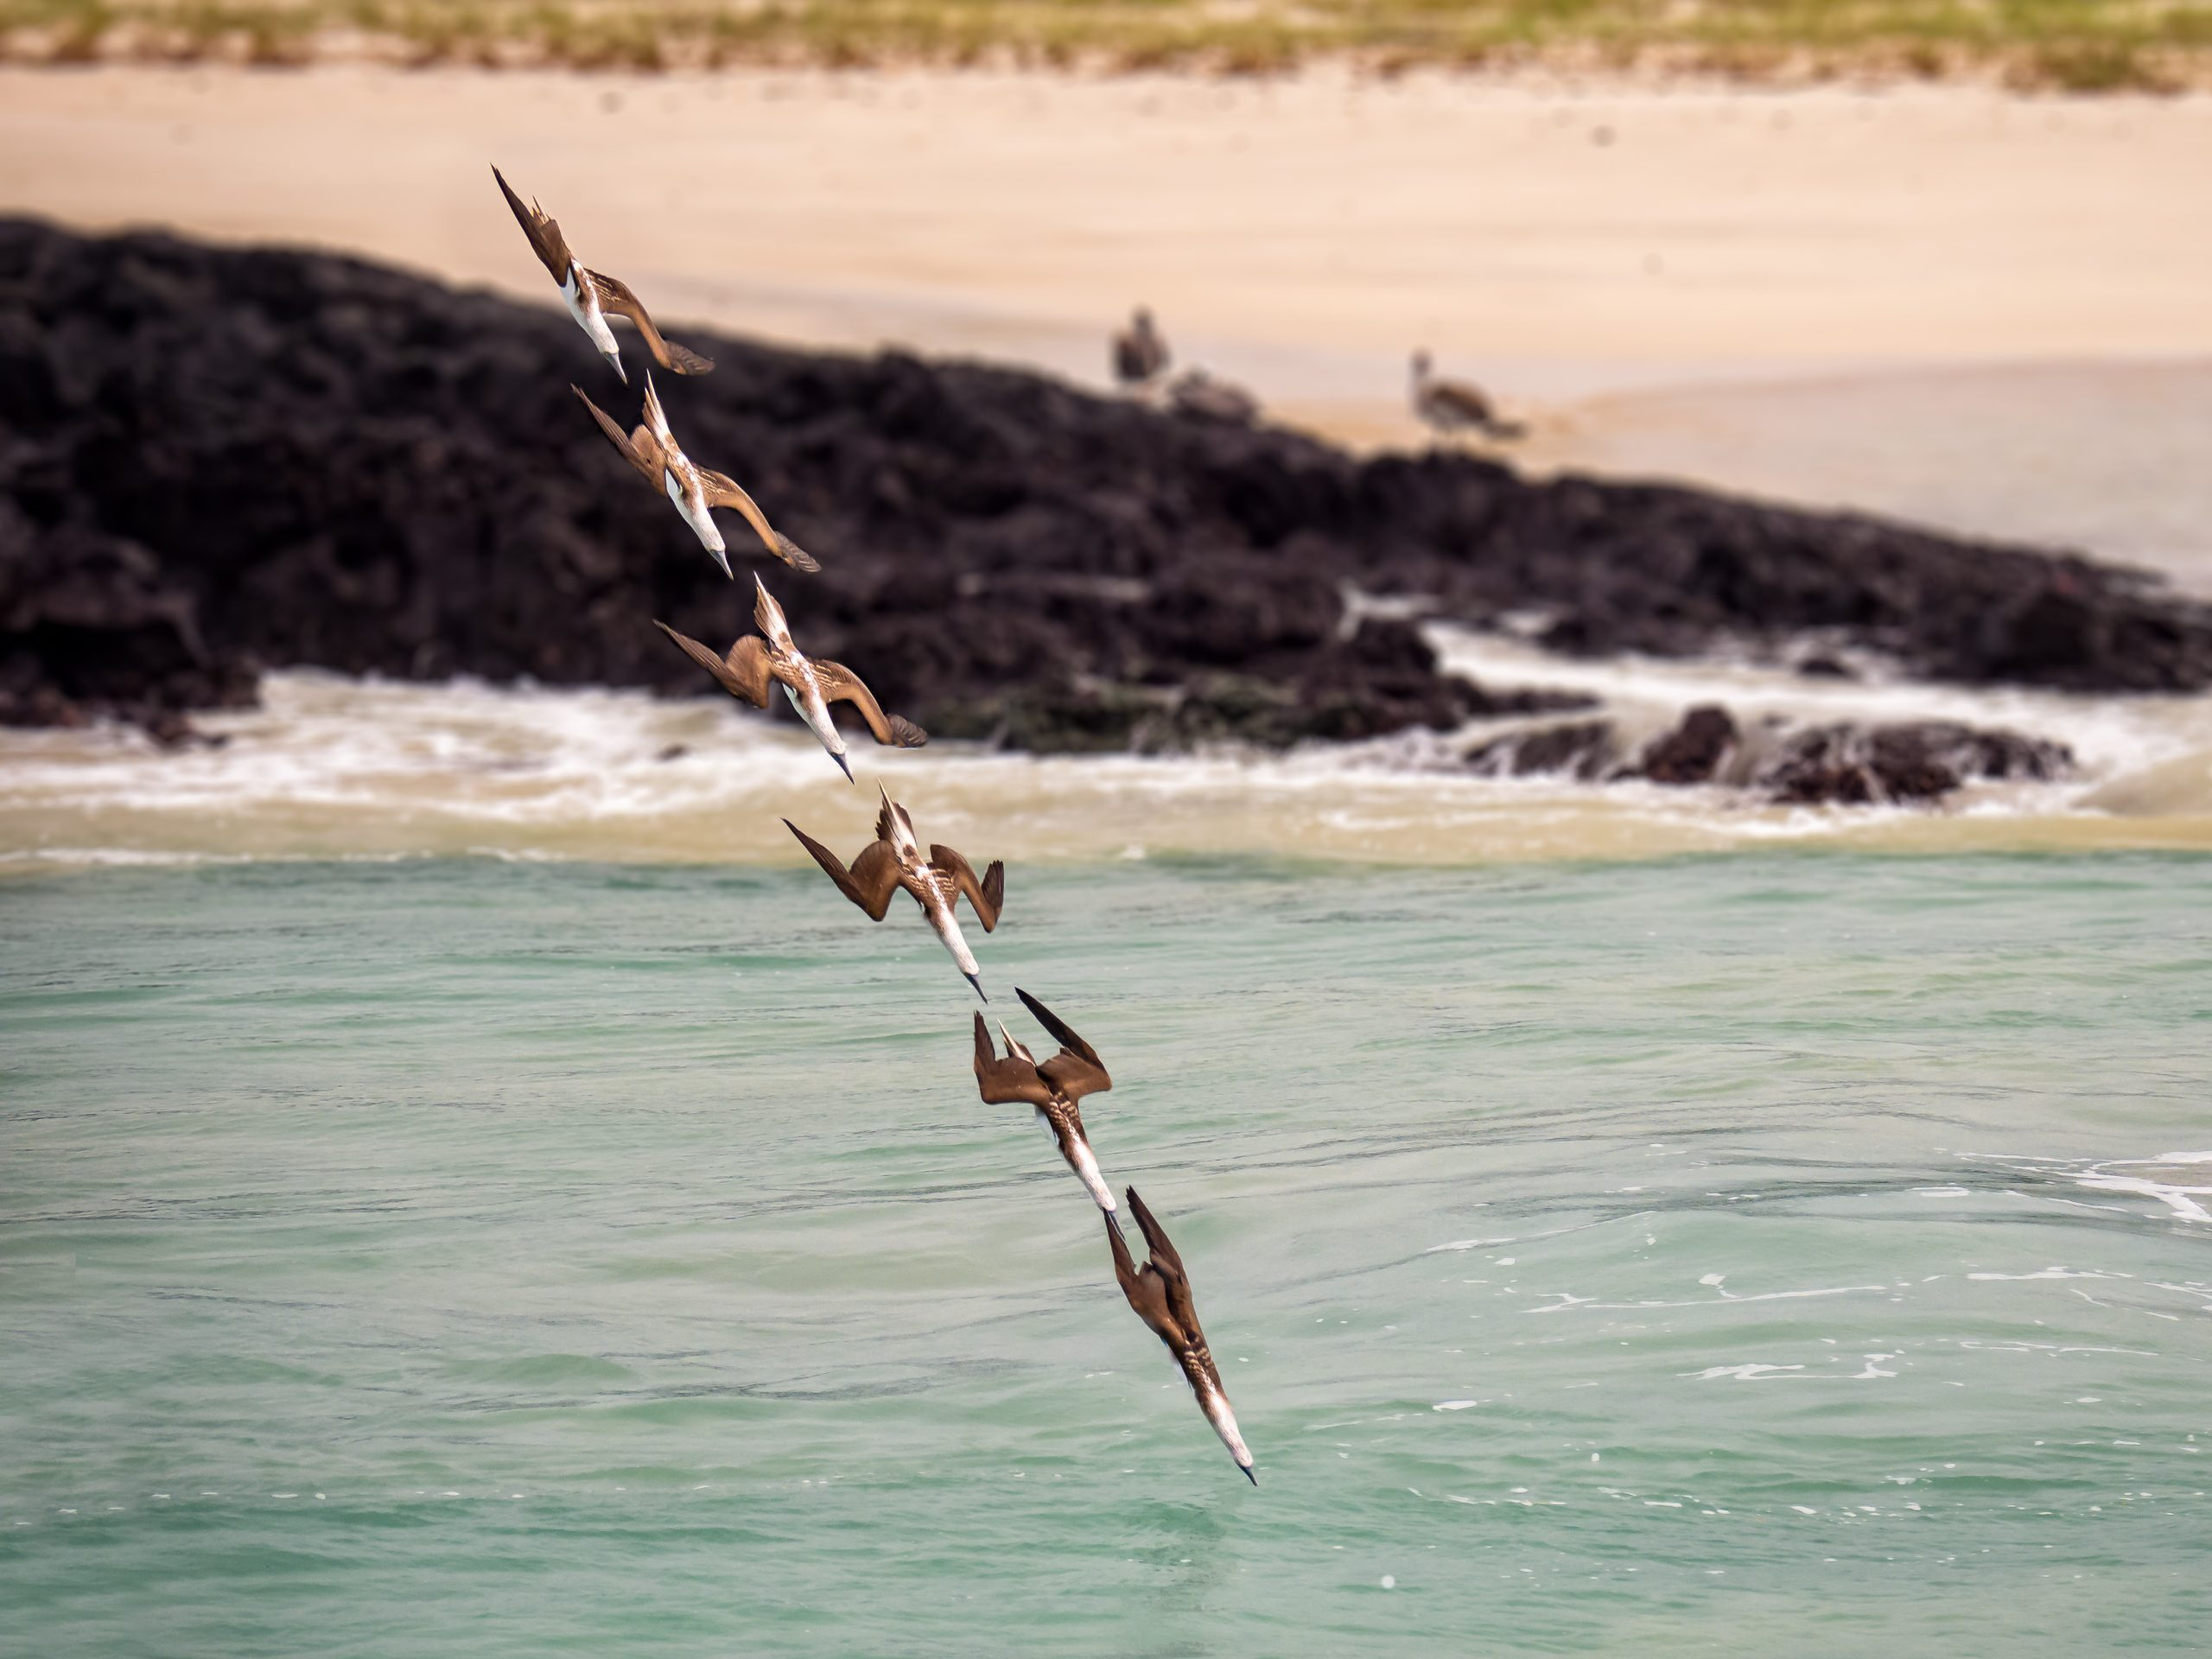 Animals in Action Runner Up - Blue-footed booby diving © Walter Rijk